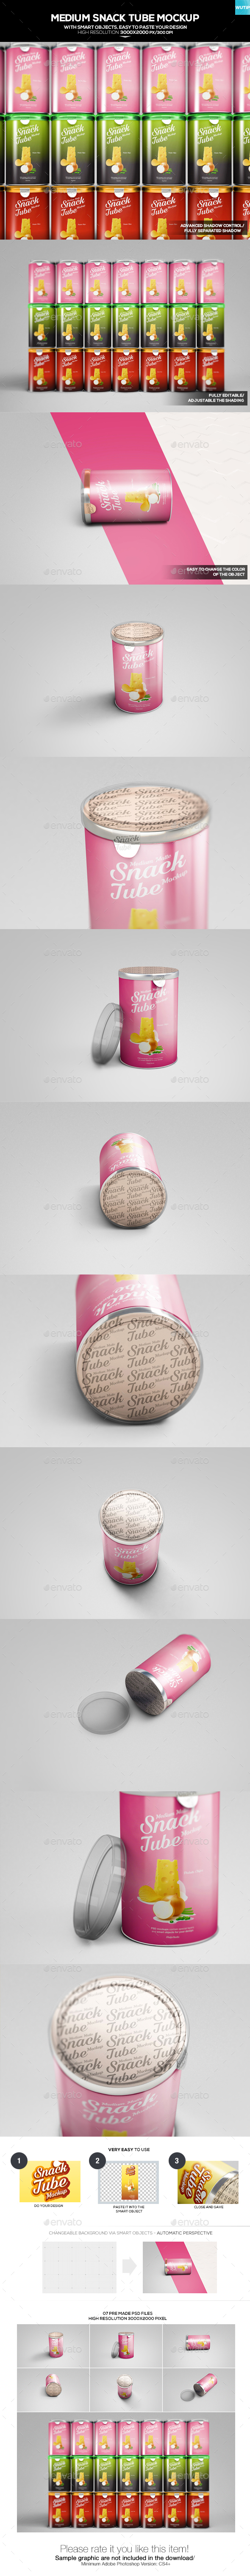 Medium Snack Tube Mockup - Food and Drink Packaging